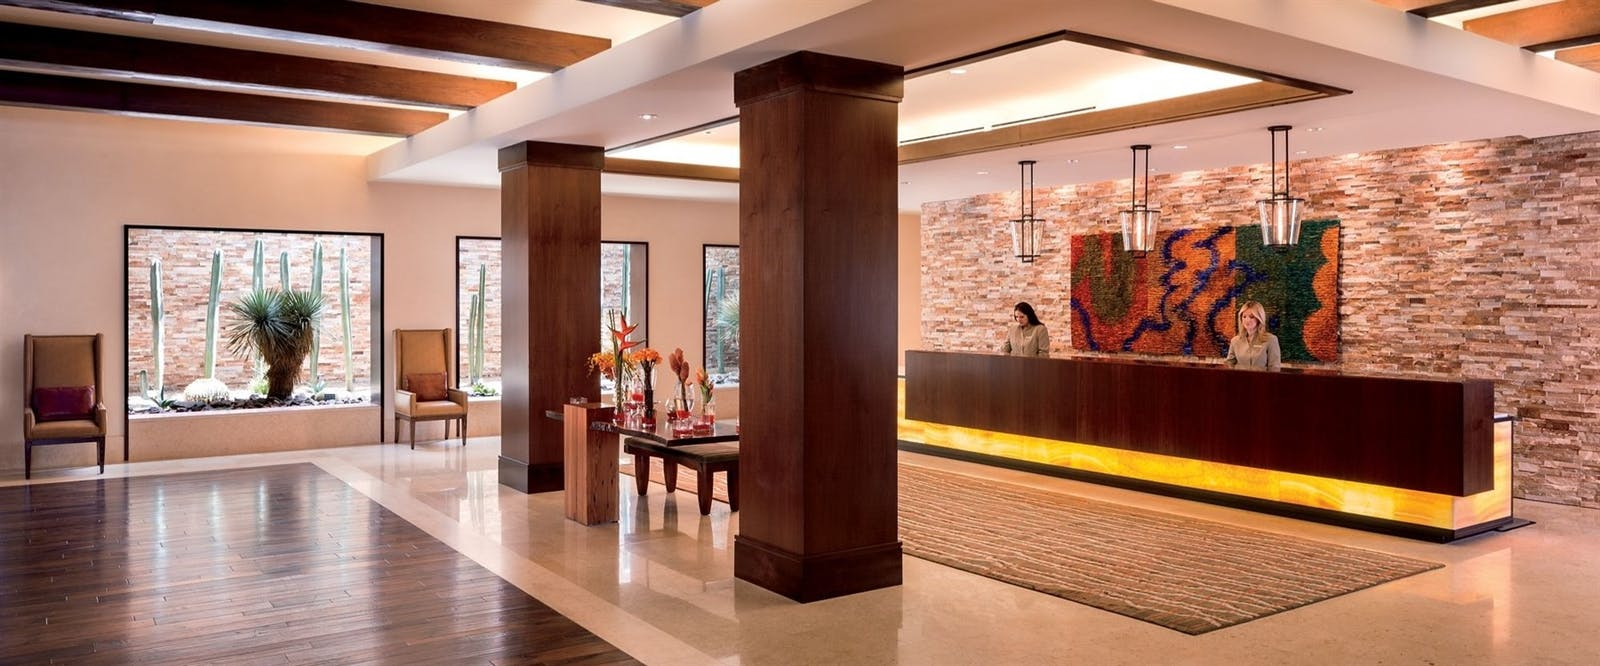 Lobby at The Ritz-Carlton, Rancho Mirage